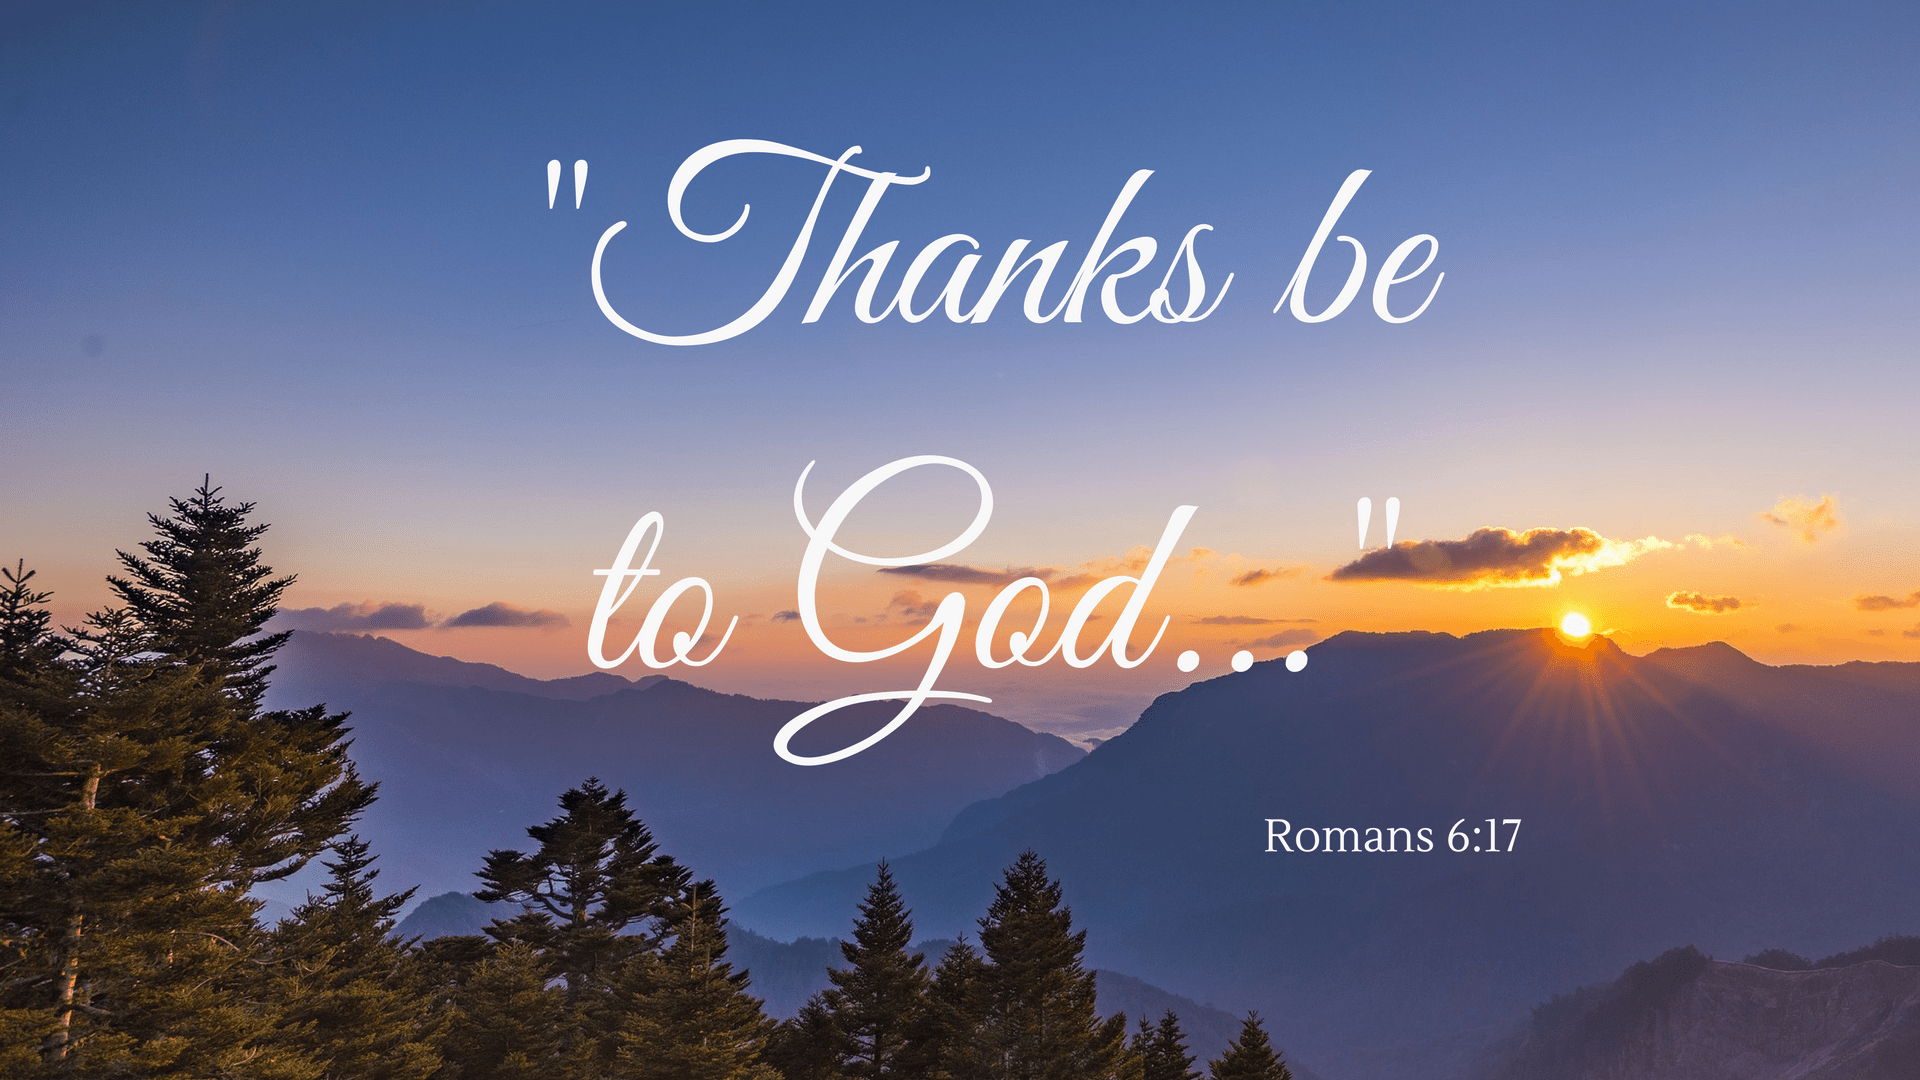 Thanks be to God - Expression of thanks - Canva - Pixabay background